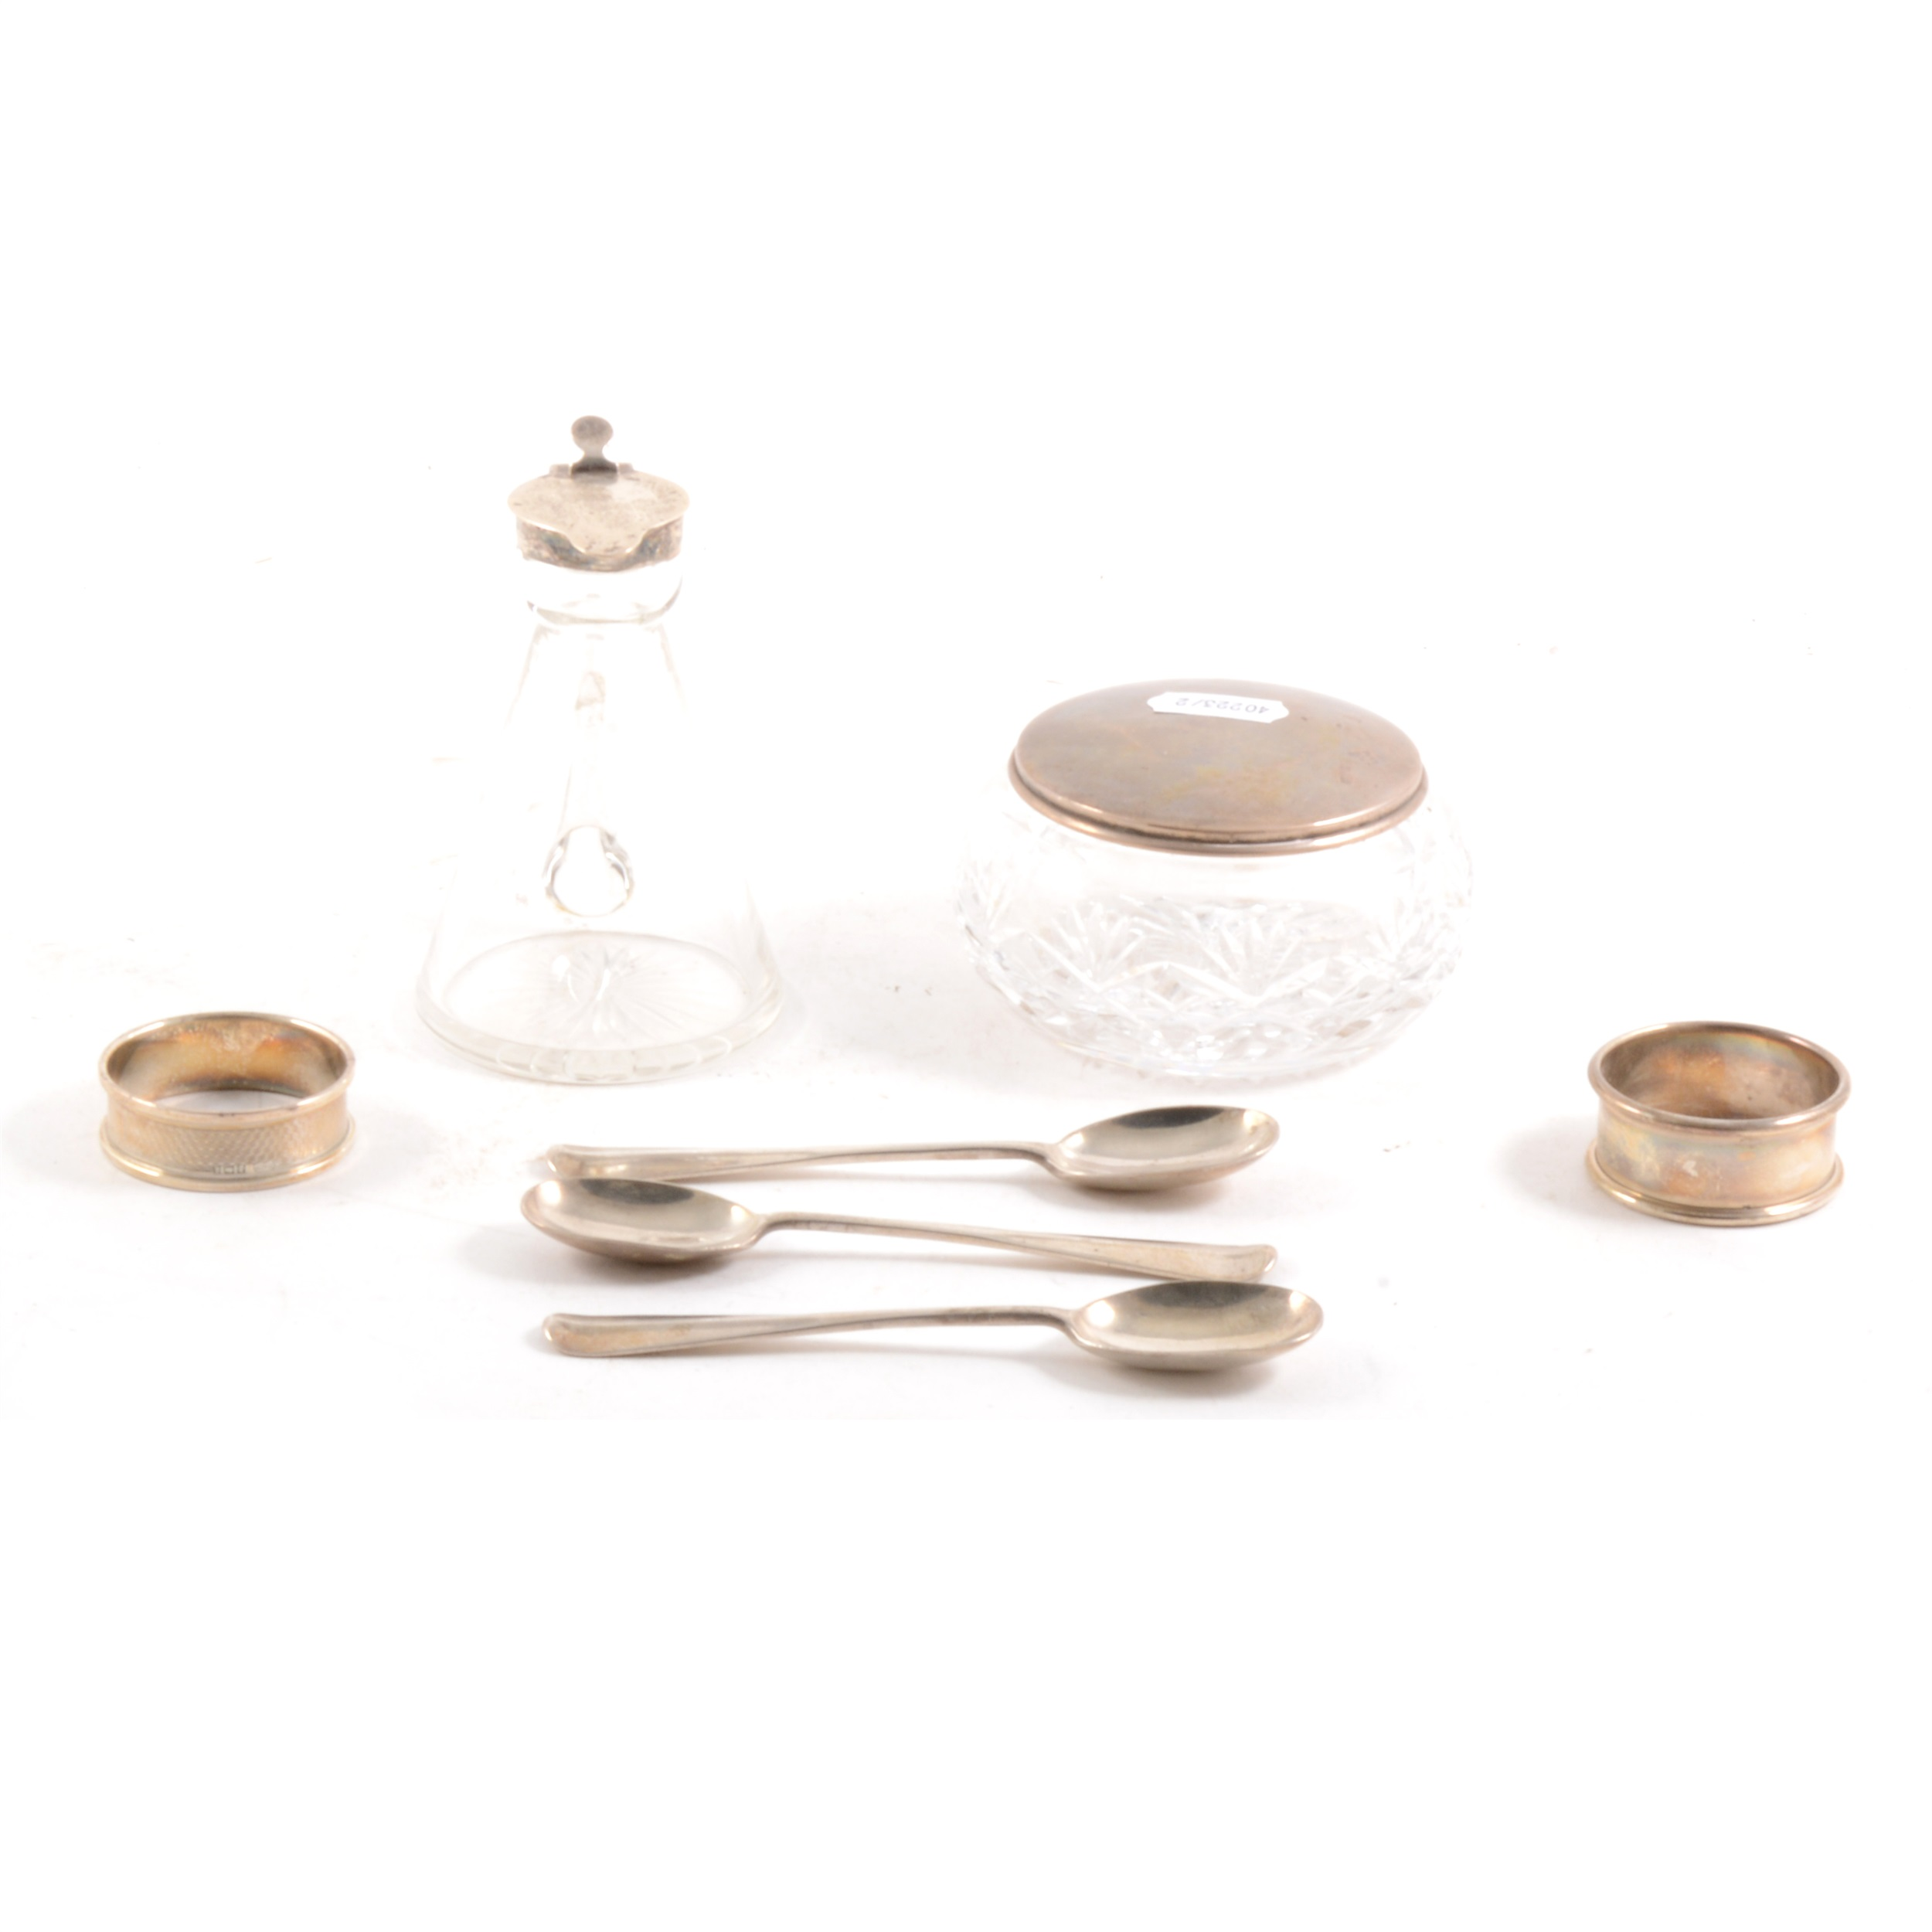 A silver mounted whisky noggin and other small silver items